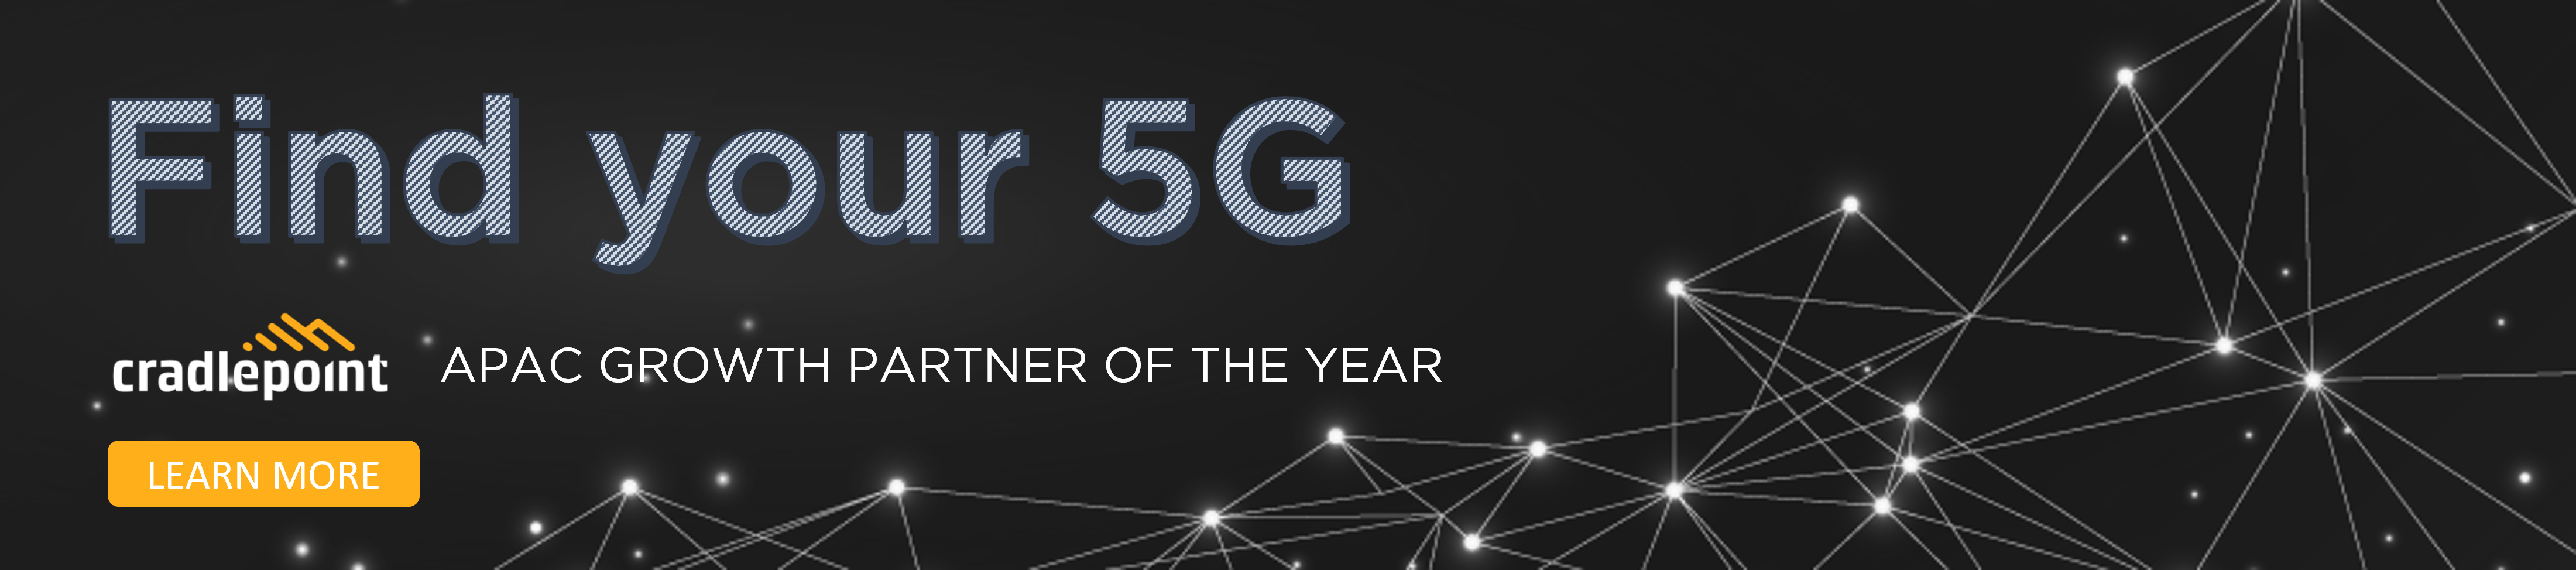 Find your 5G banner